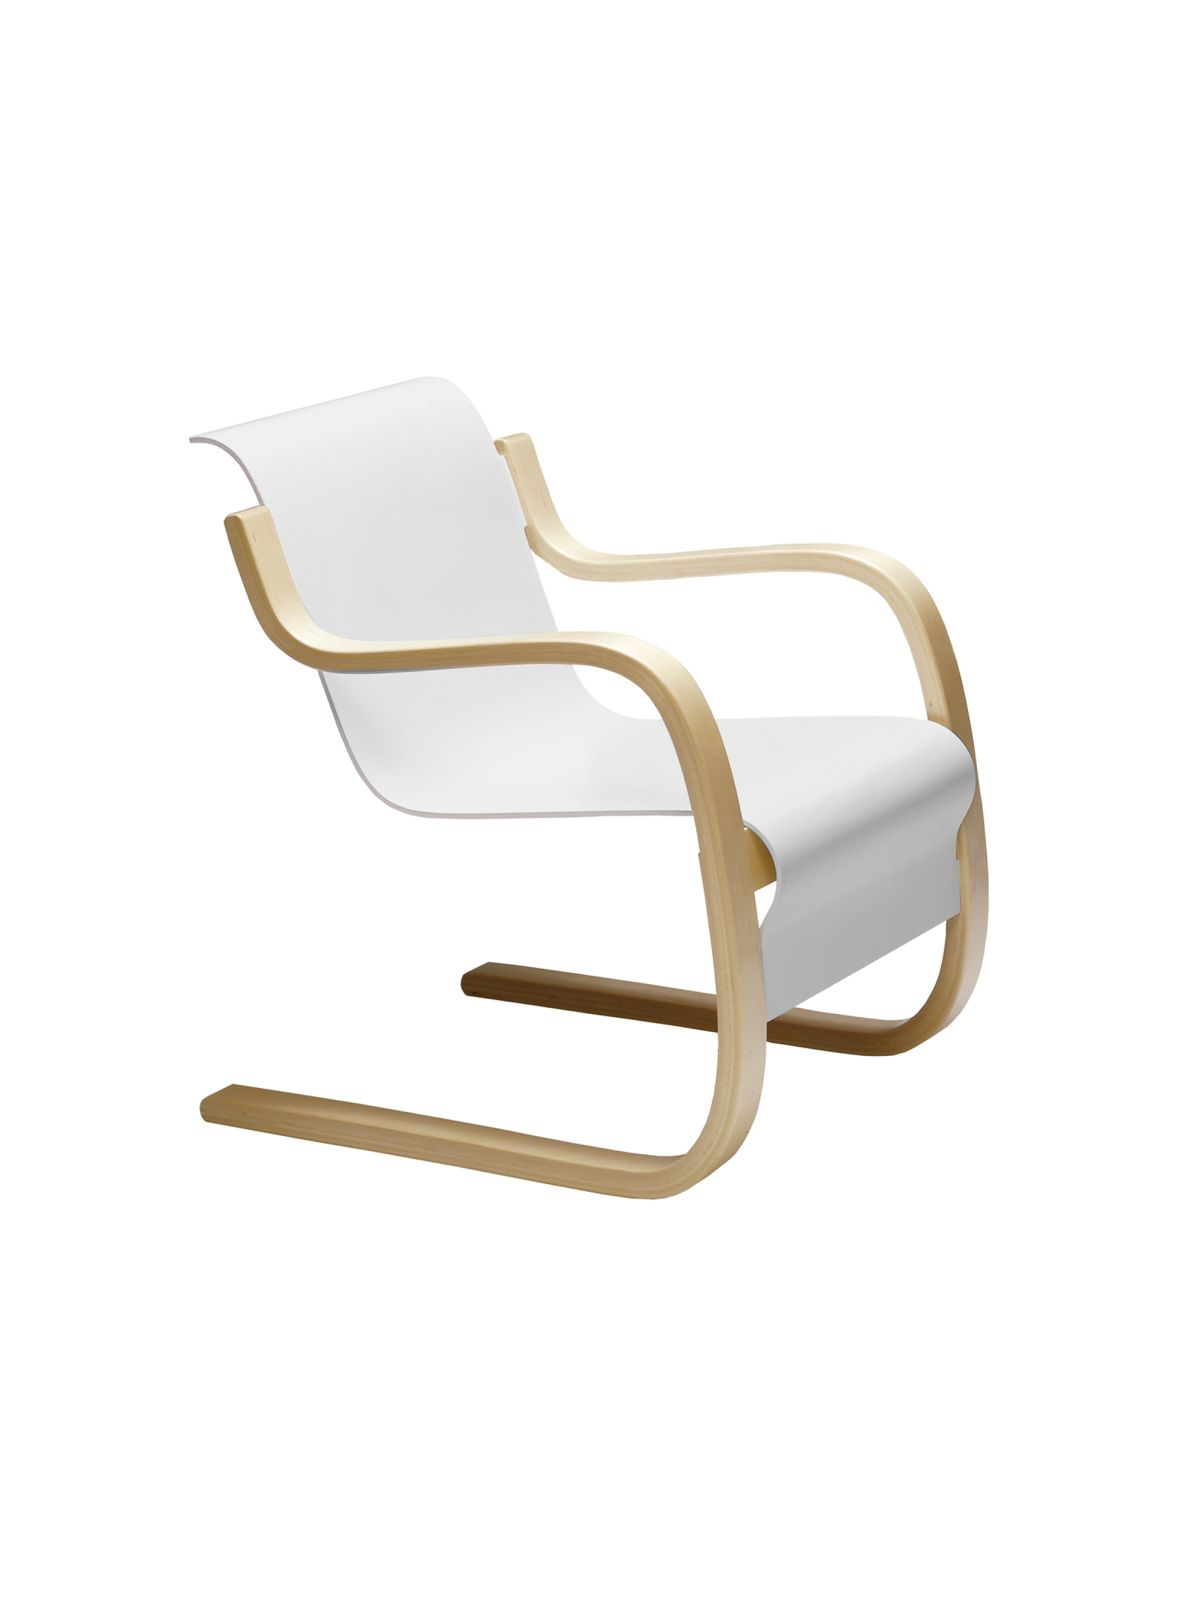 Armchair 42 white lacquer